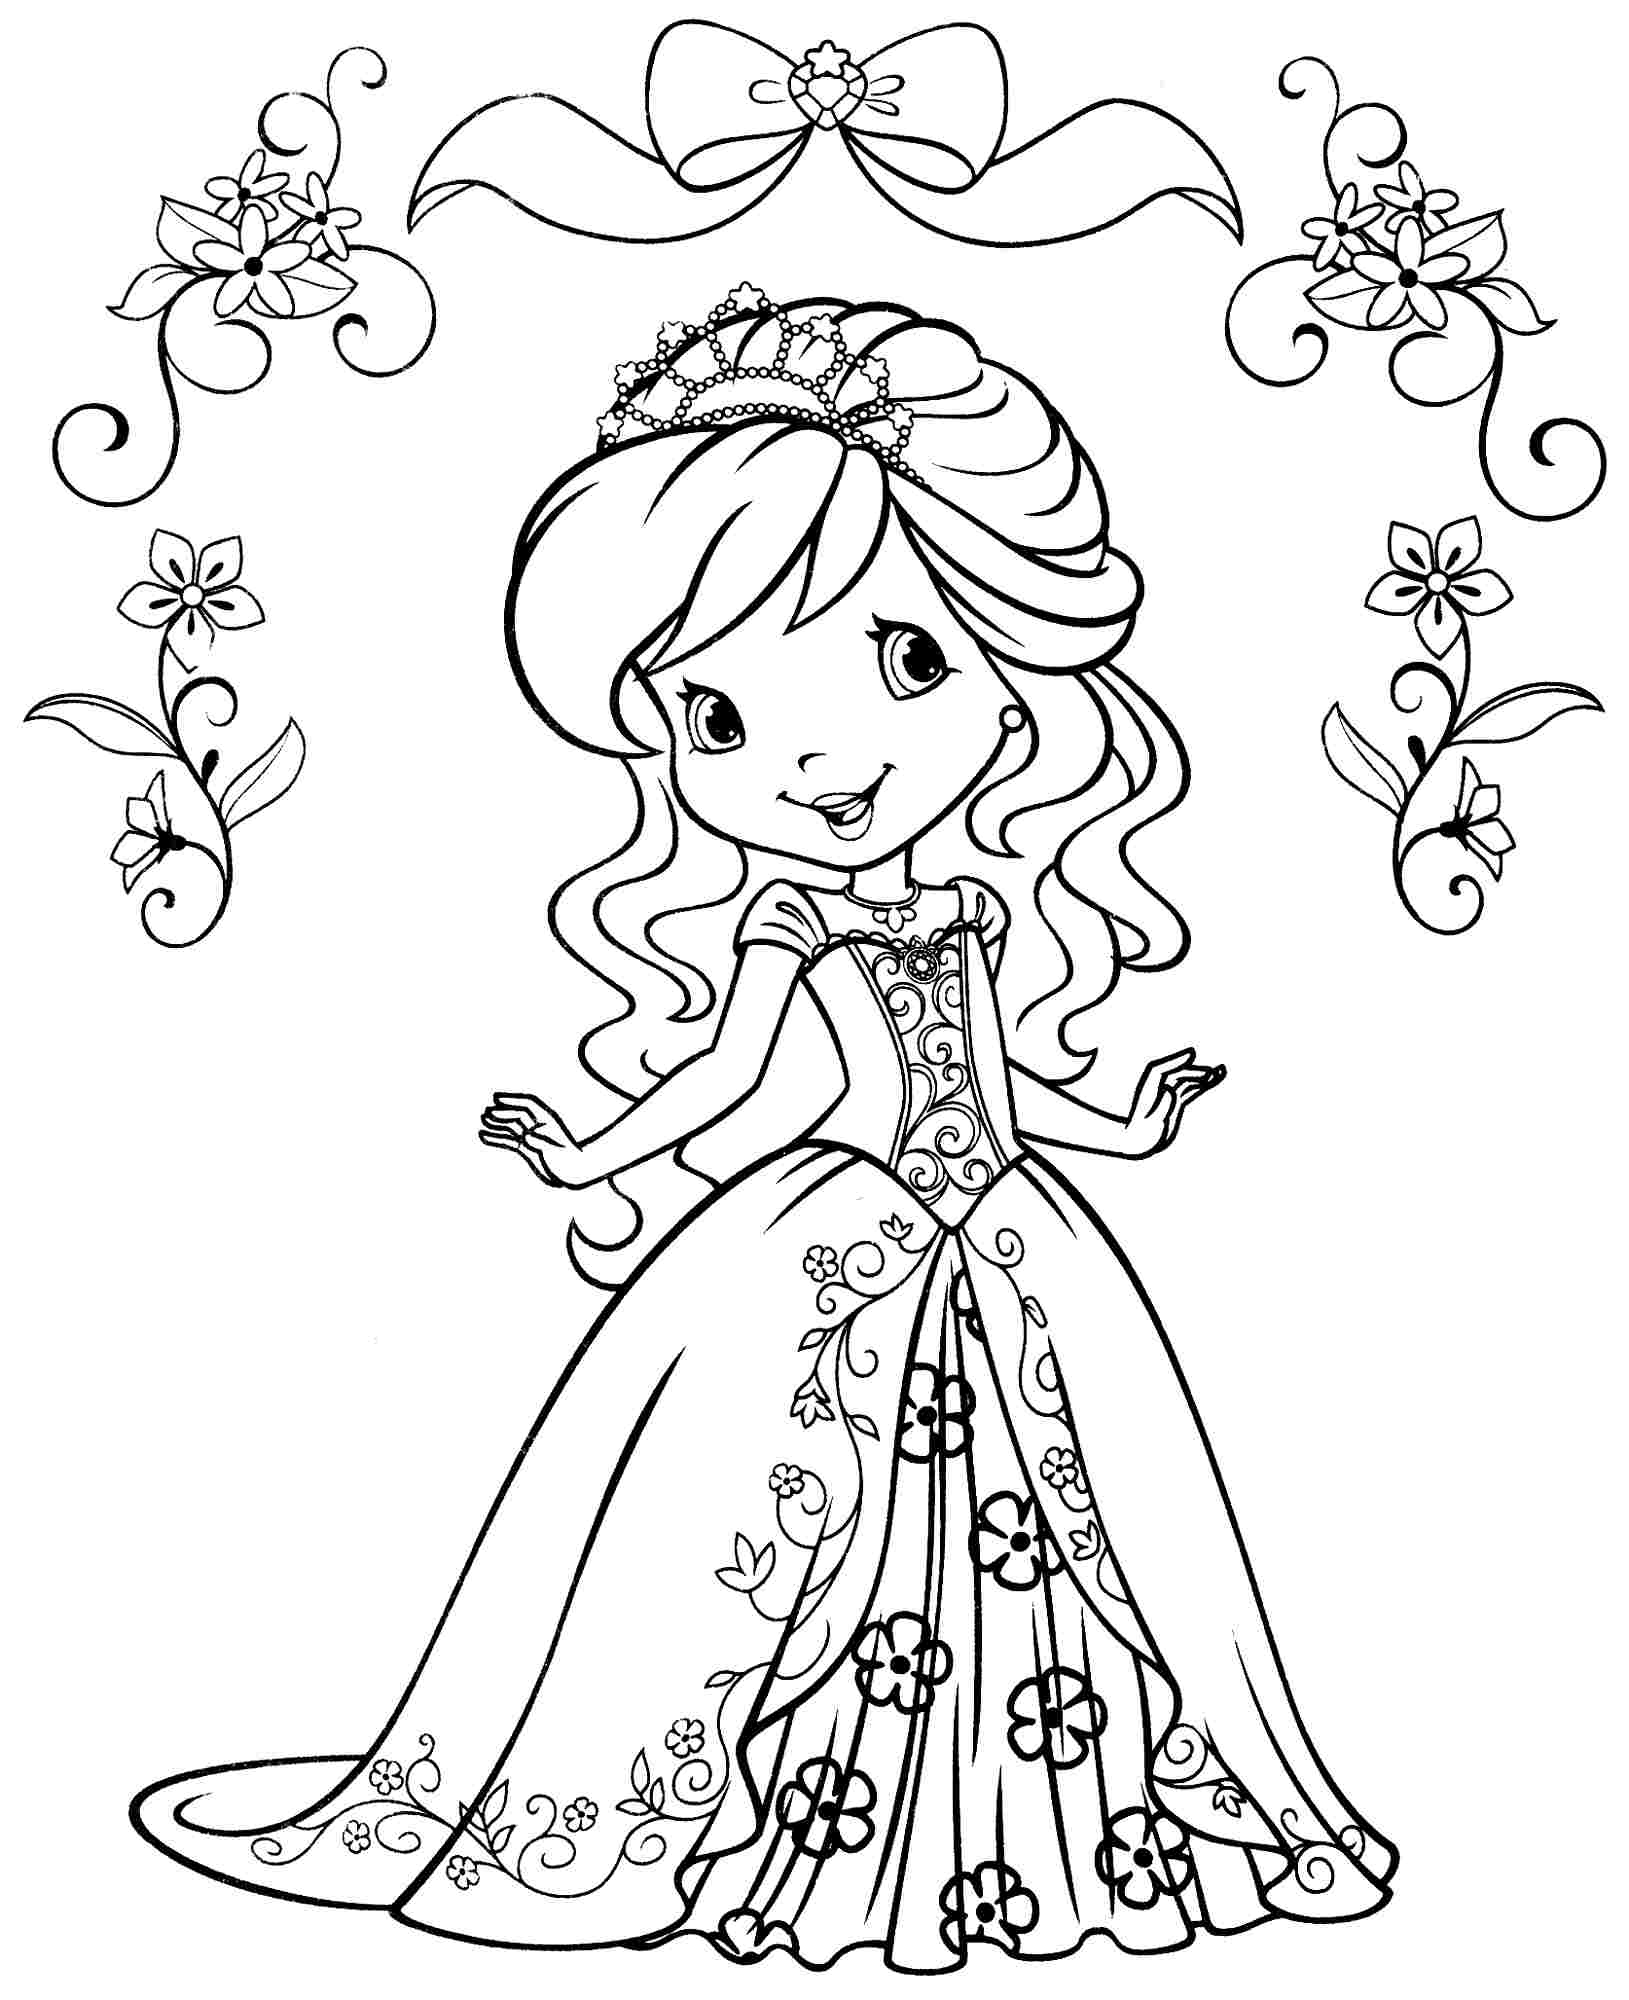 Strawberry Shortcake Valentine Coloring Pages Download And